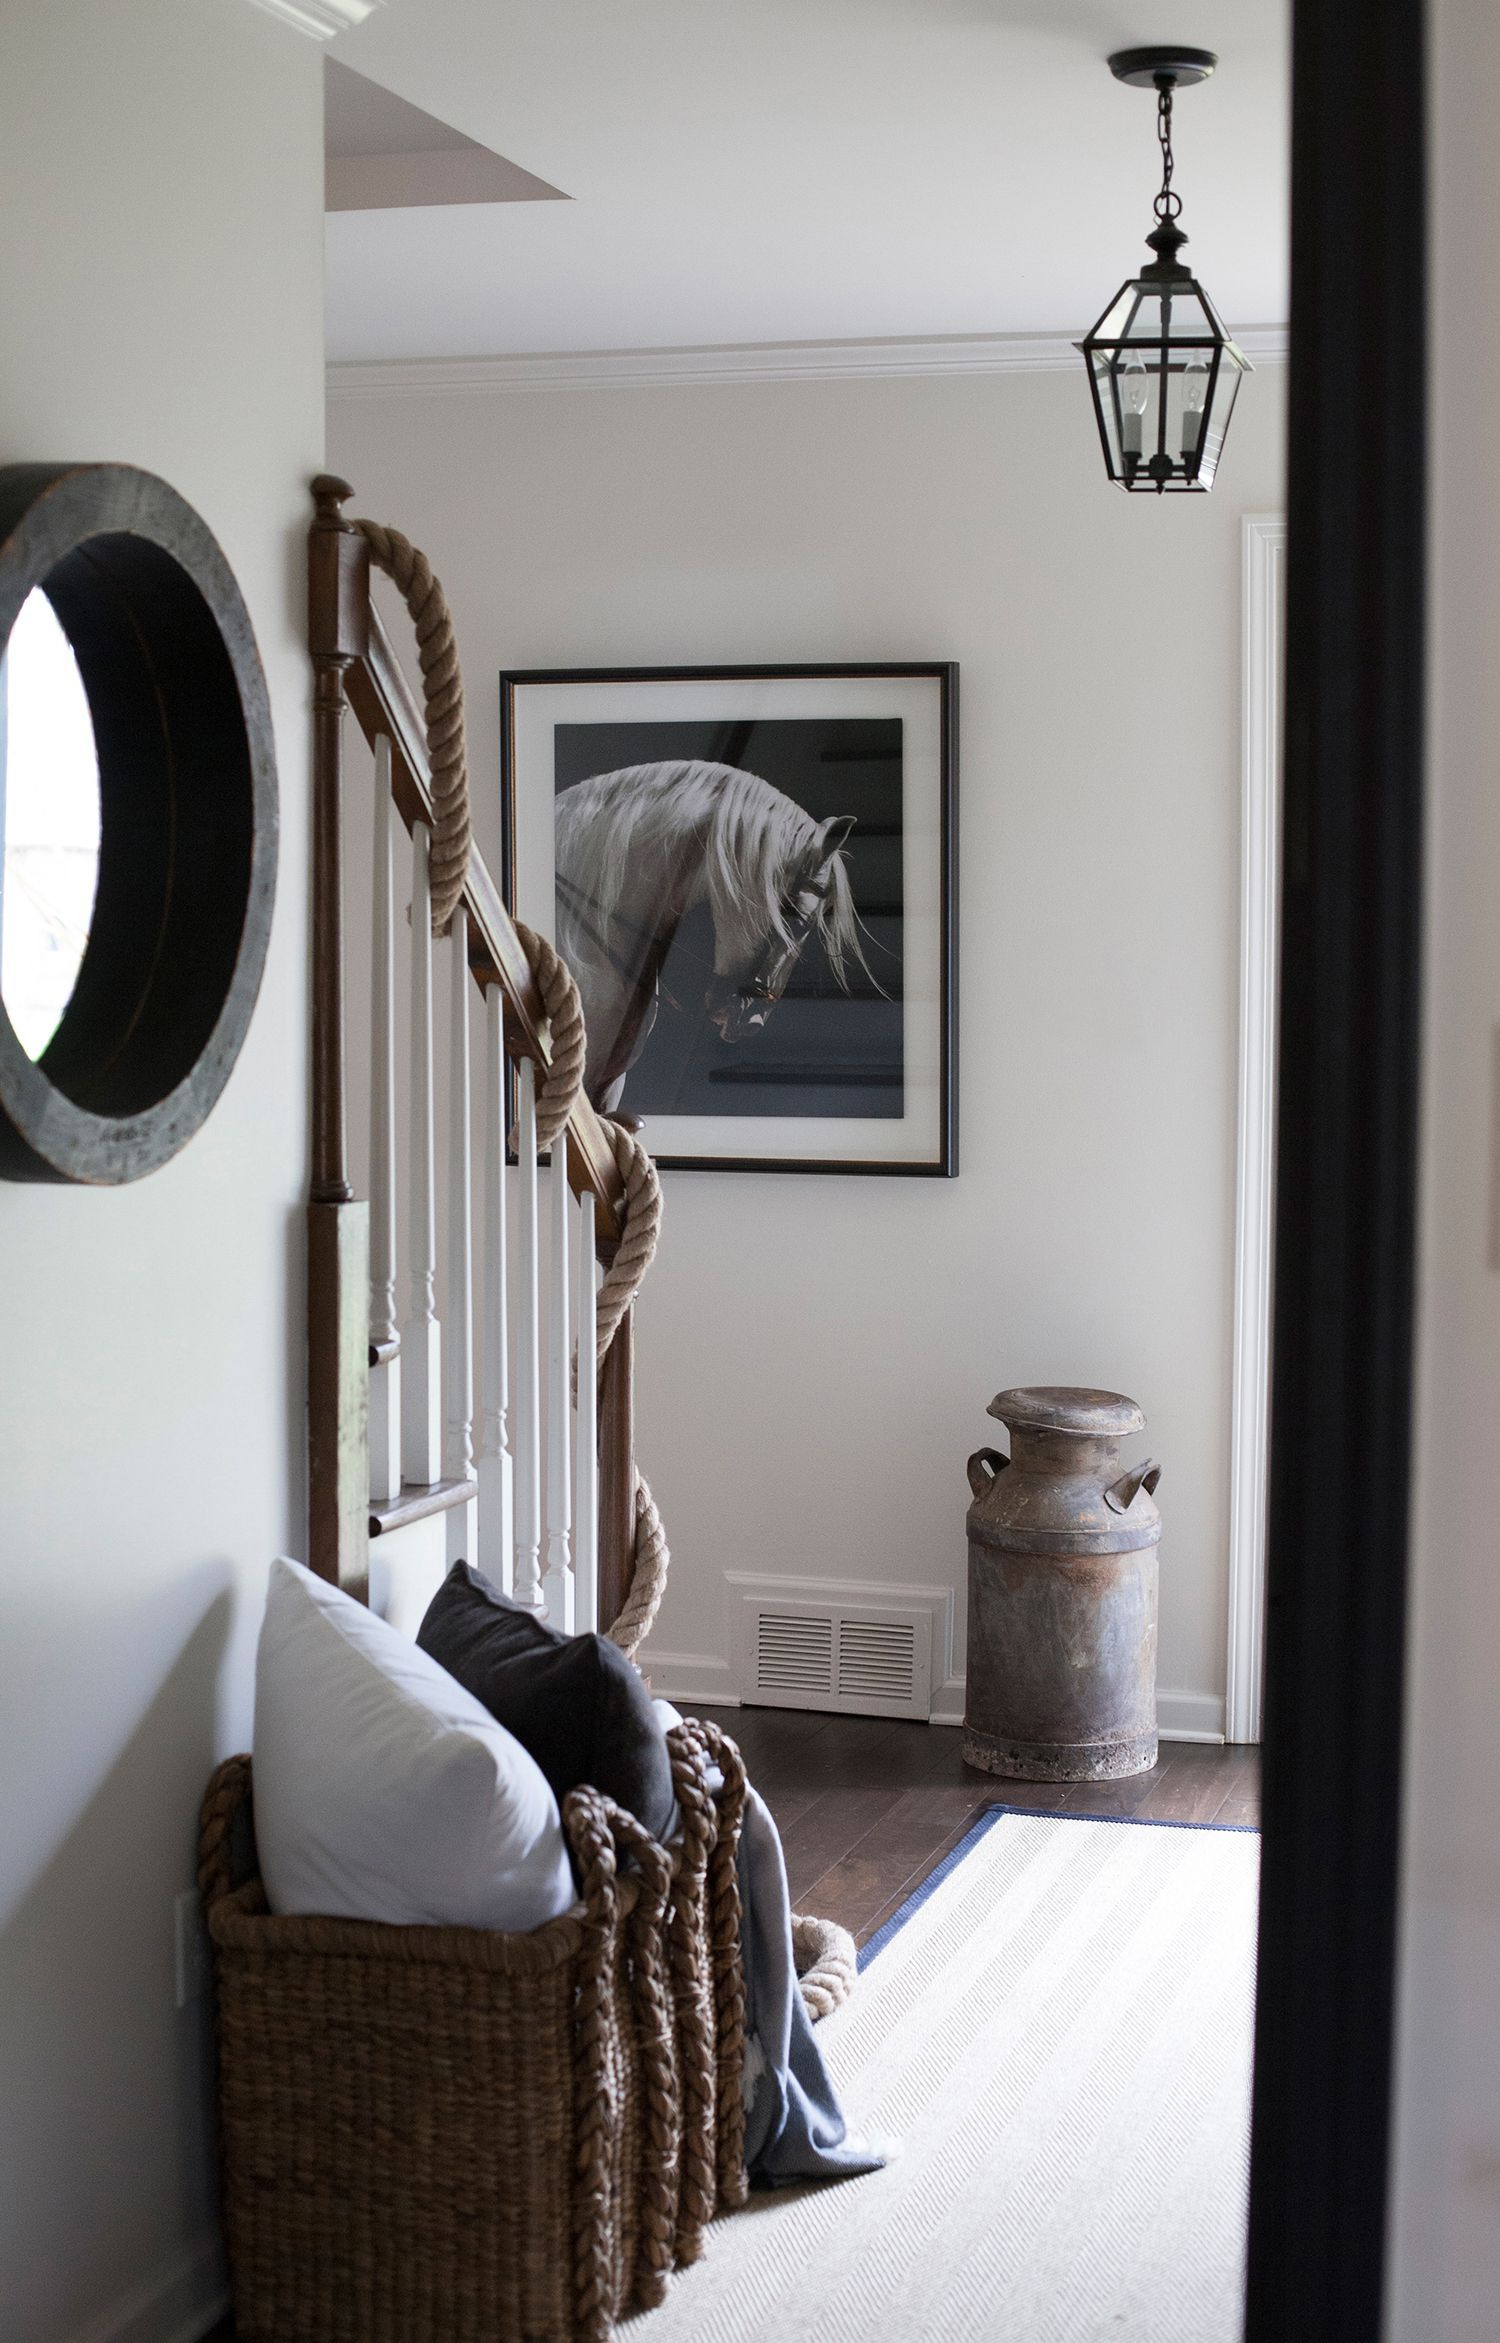 33 Stairway Gallery Wall Ideas To Get You Inspired: 27 Stylish Staircase Decorating Ideas